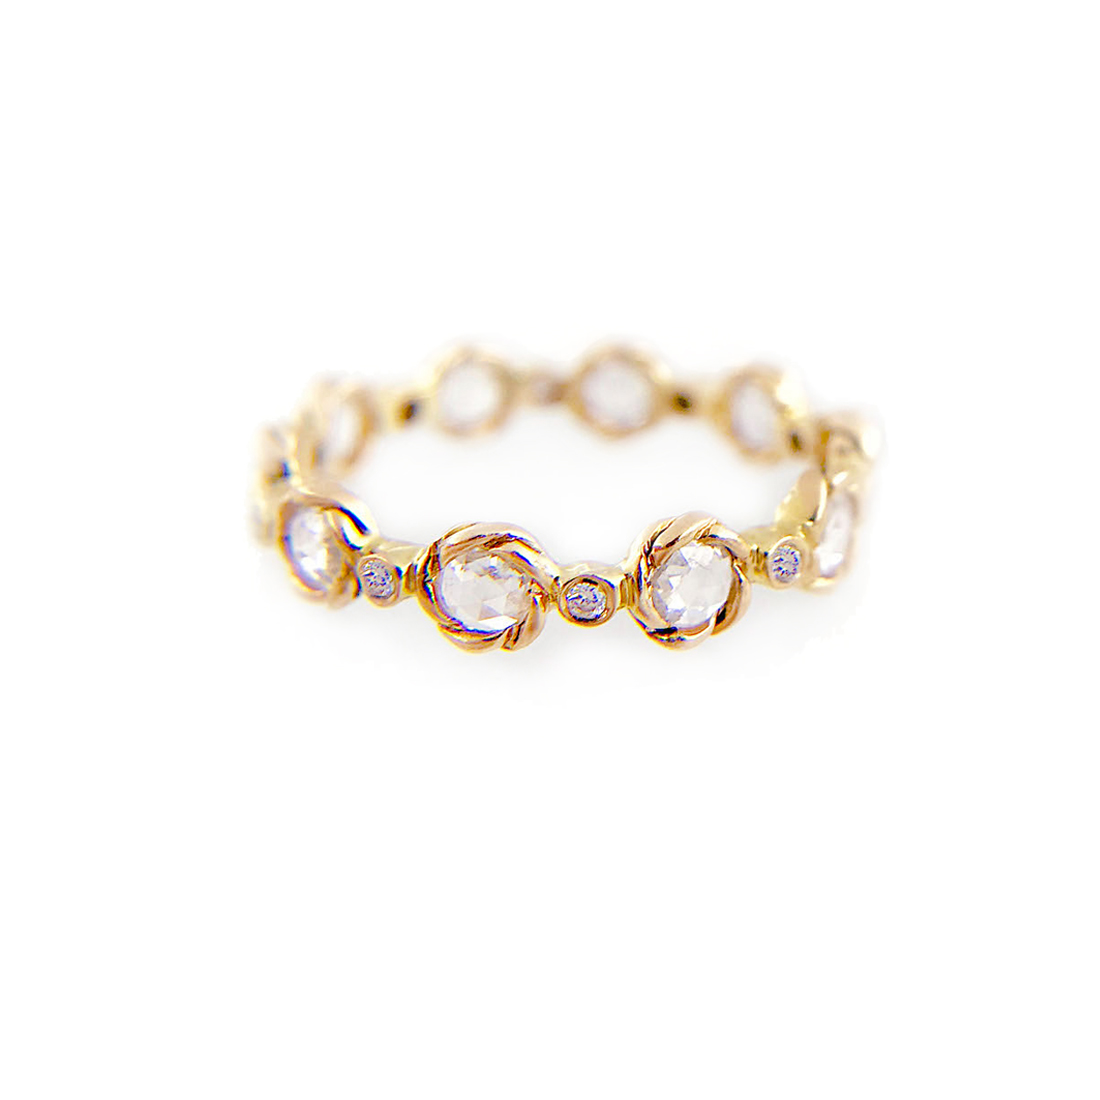 21-Signature-Twist-Bezel-4mm-Rose-Cut-Diamond-Eternity-Gold-Ring-14k-18k-JeweLyrie_33